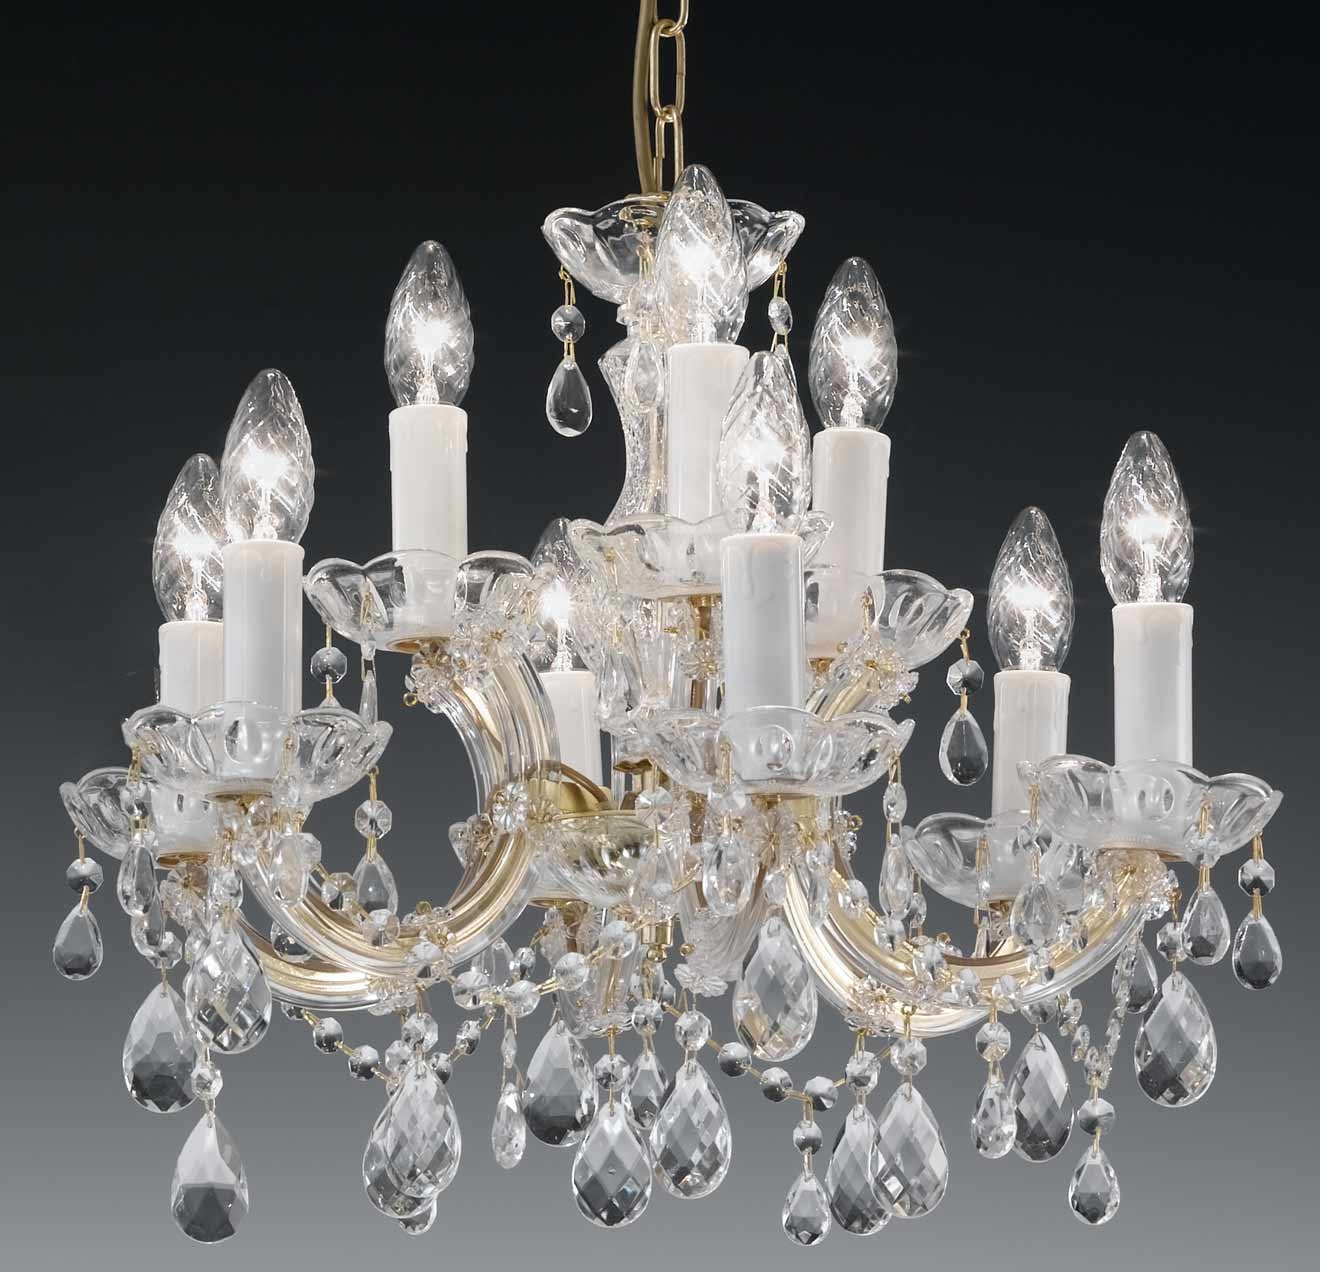 Italian Chandelier Vintage For Your Designing Home Inspiration Intended For Vintage Italian Chandeliers (Image 7 of 15)